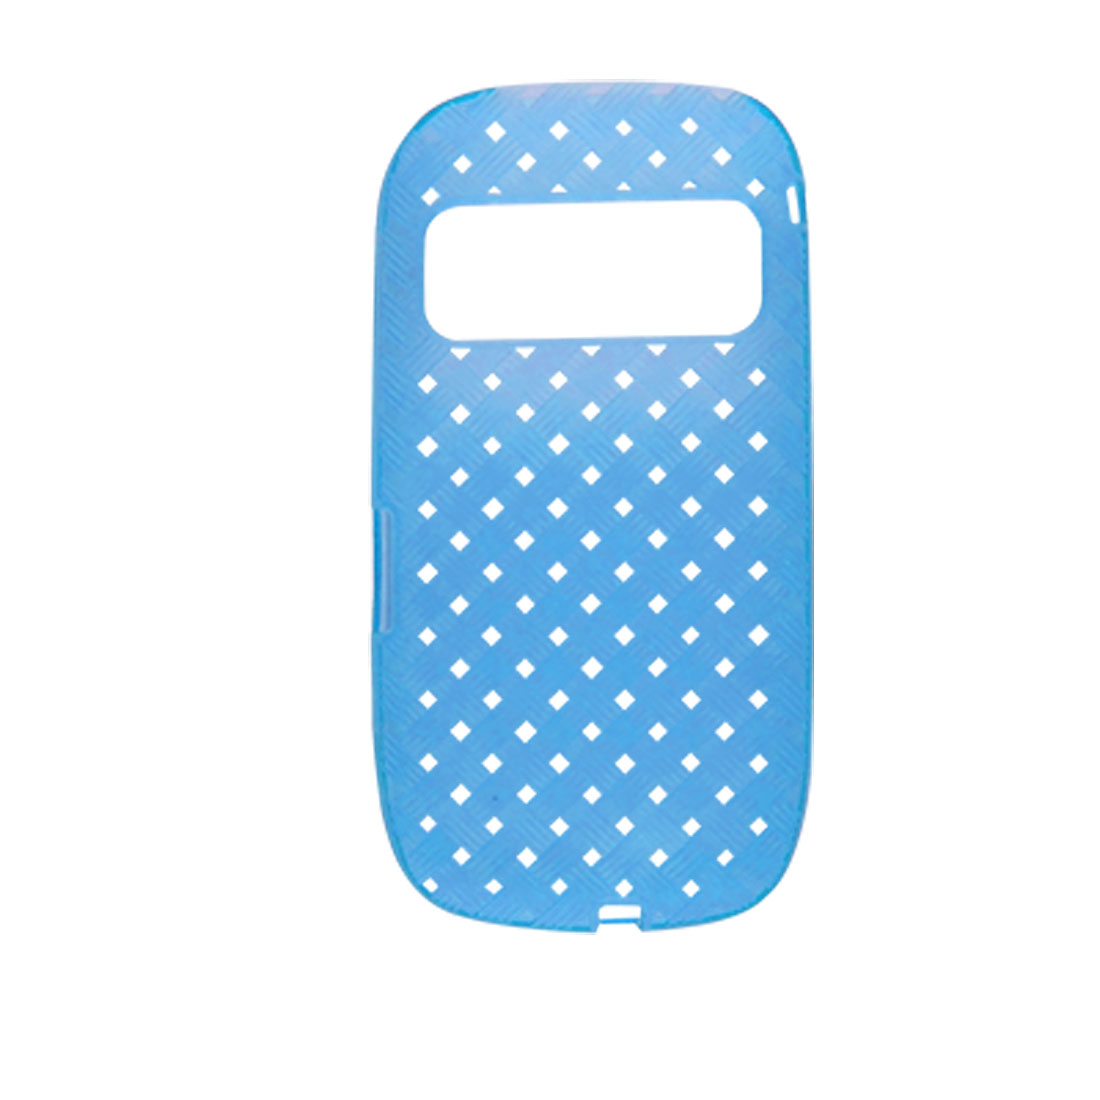 Blue Perforated Holes Soft Plastic Pattern Cover Shell for Nokia C7